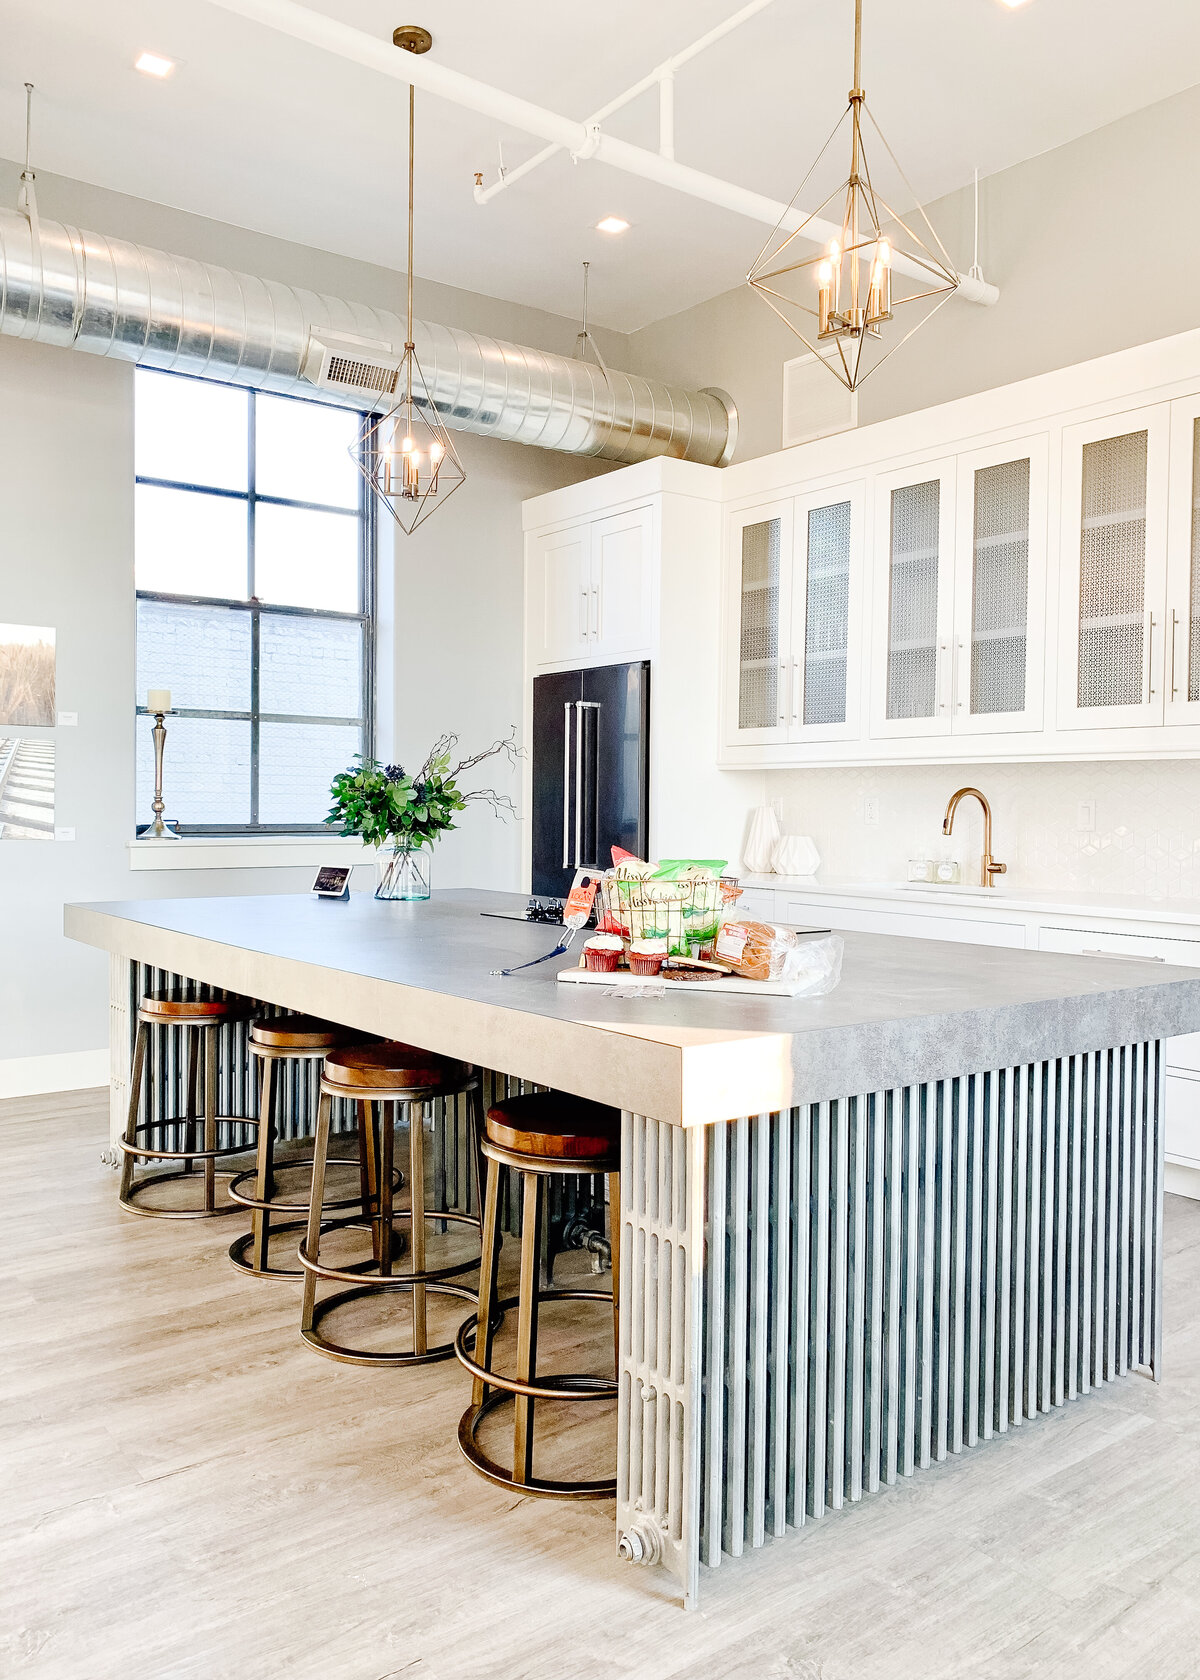 A white, industrial kitchen with a large central island made with old radiators below geometric pendant lights.